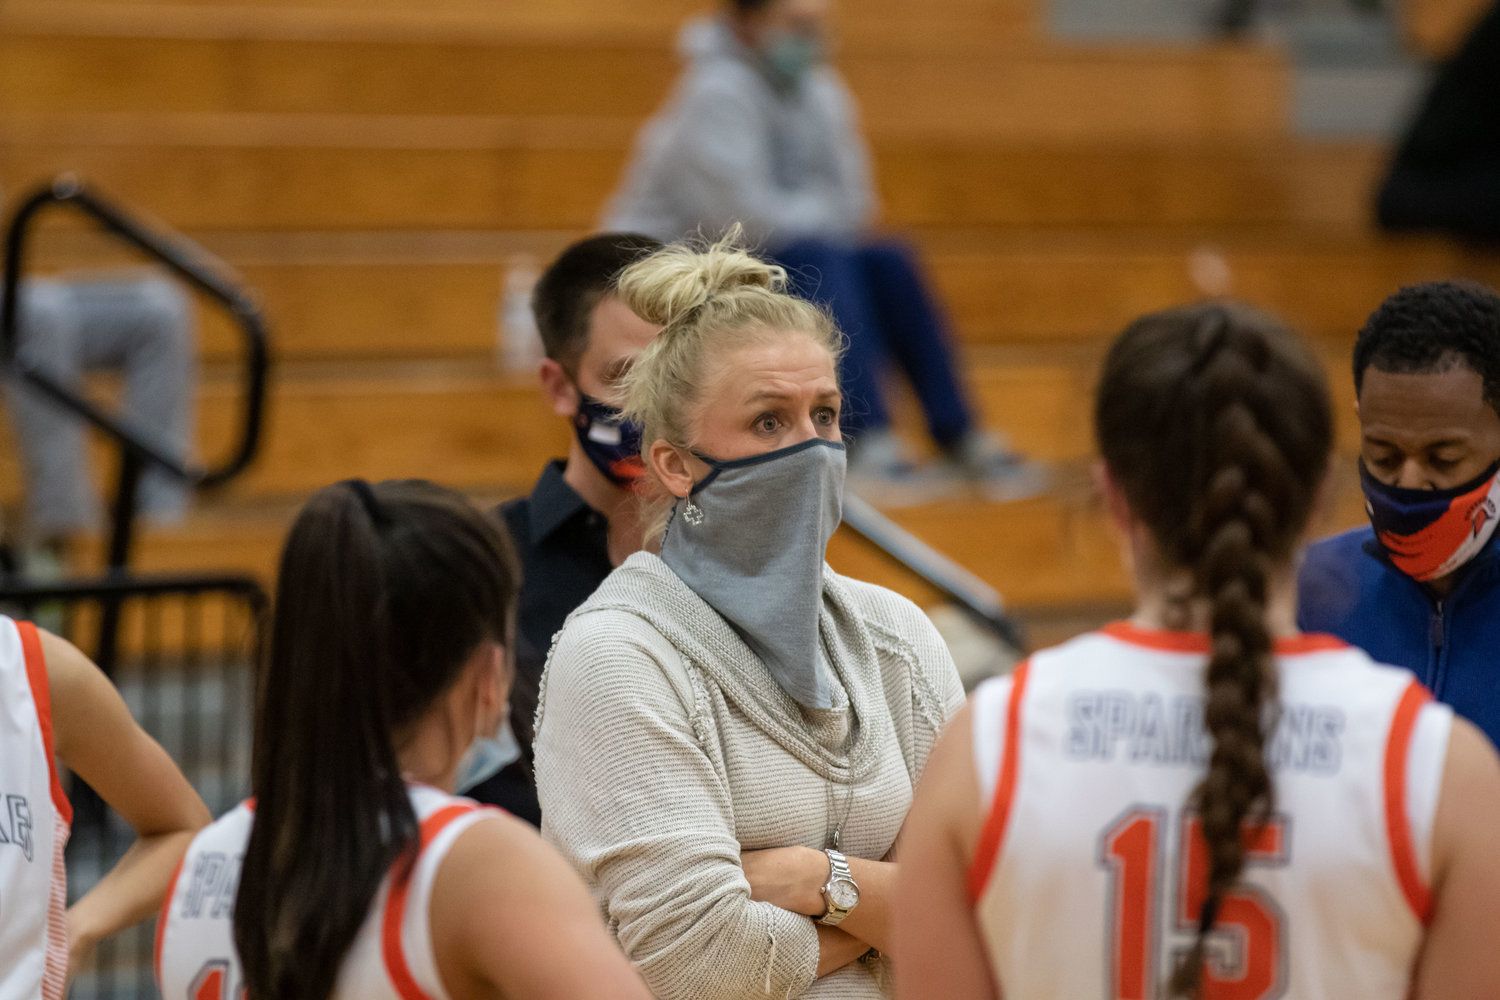 Seven Lakes coach Angela Spurlock talks to her players during a timeout during a game against George Ranch on Dec. 14 at Seven Lakes High.